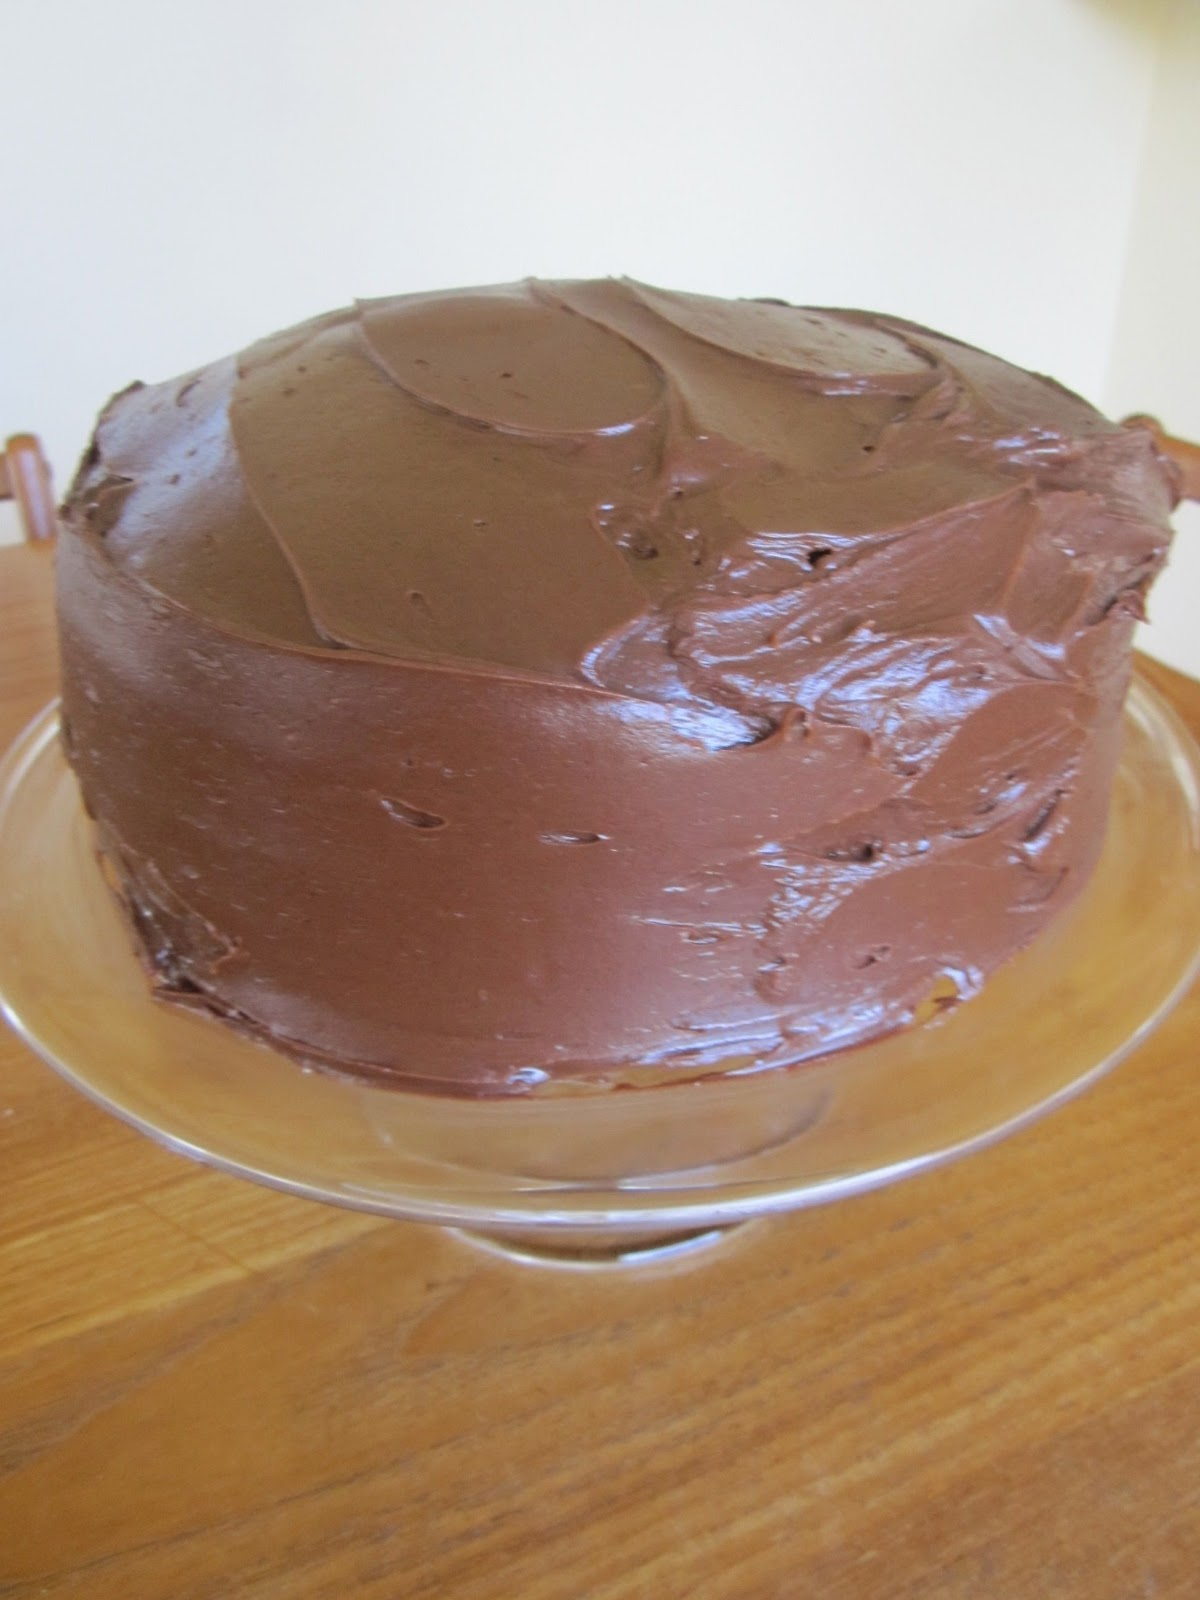 ... Time Capsule: Chocolate Fudge Cake with Chocolate Fudge Frosting